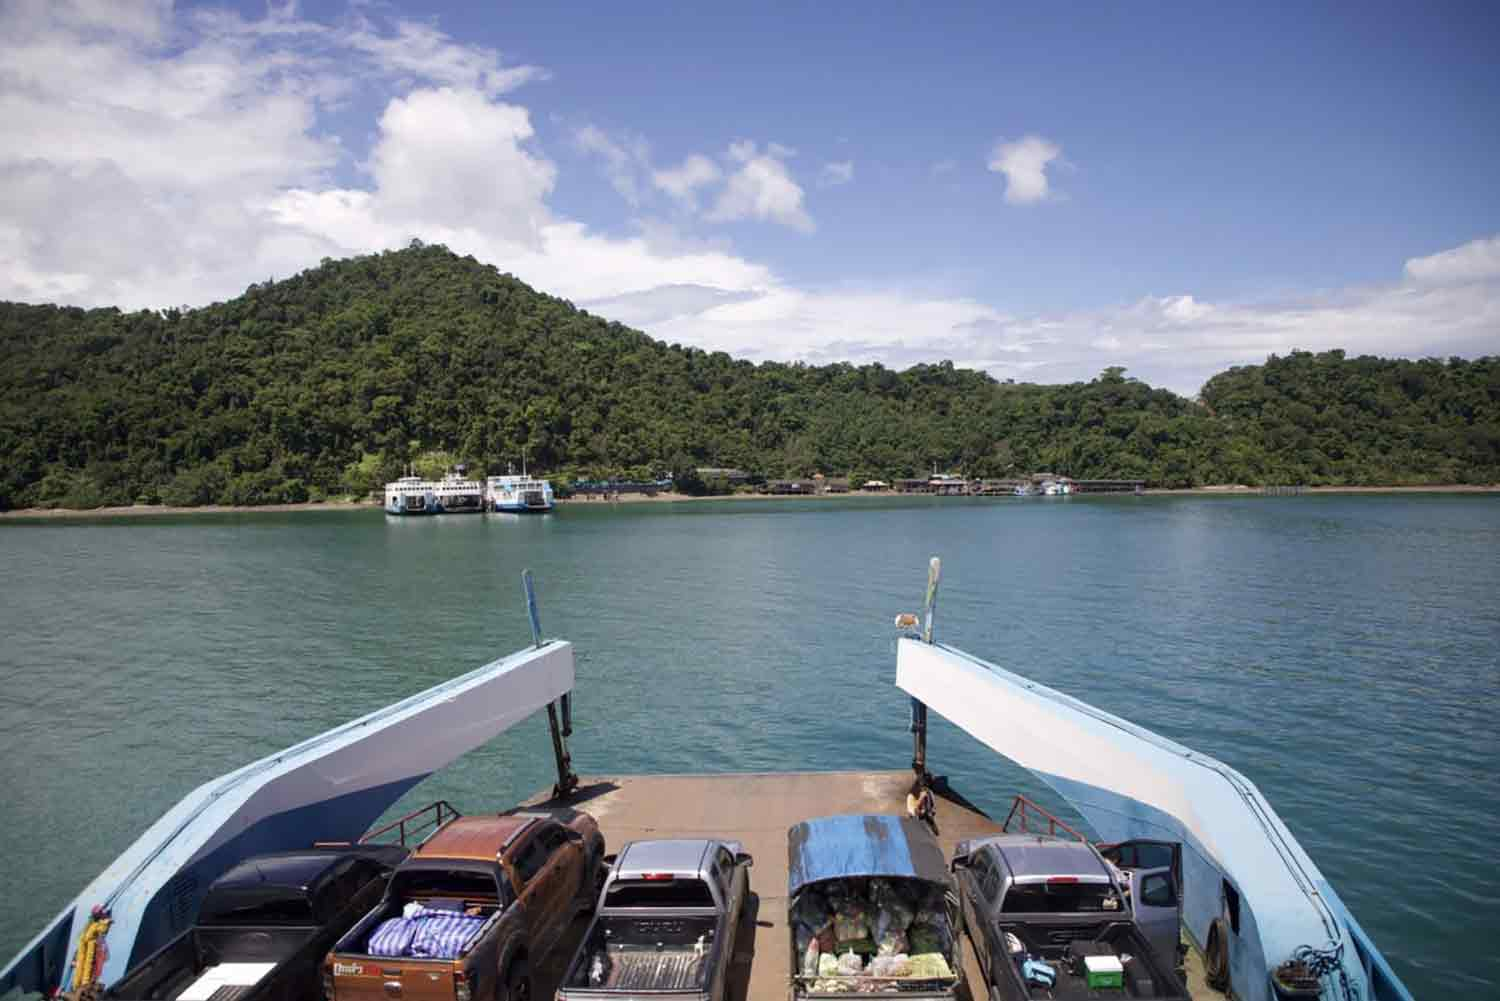 Residents and visitors going between the mainland of Trat and Koh Chang must travel by ferry, which takes 30–45 minutes. (Photo: Jakkrit Waewklaihong)